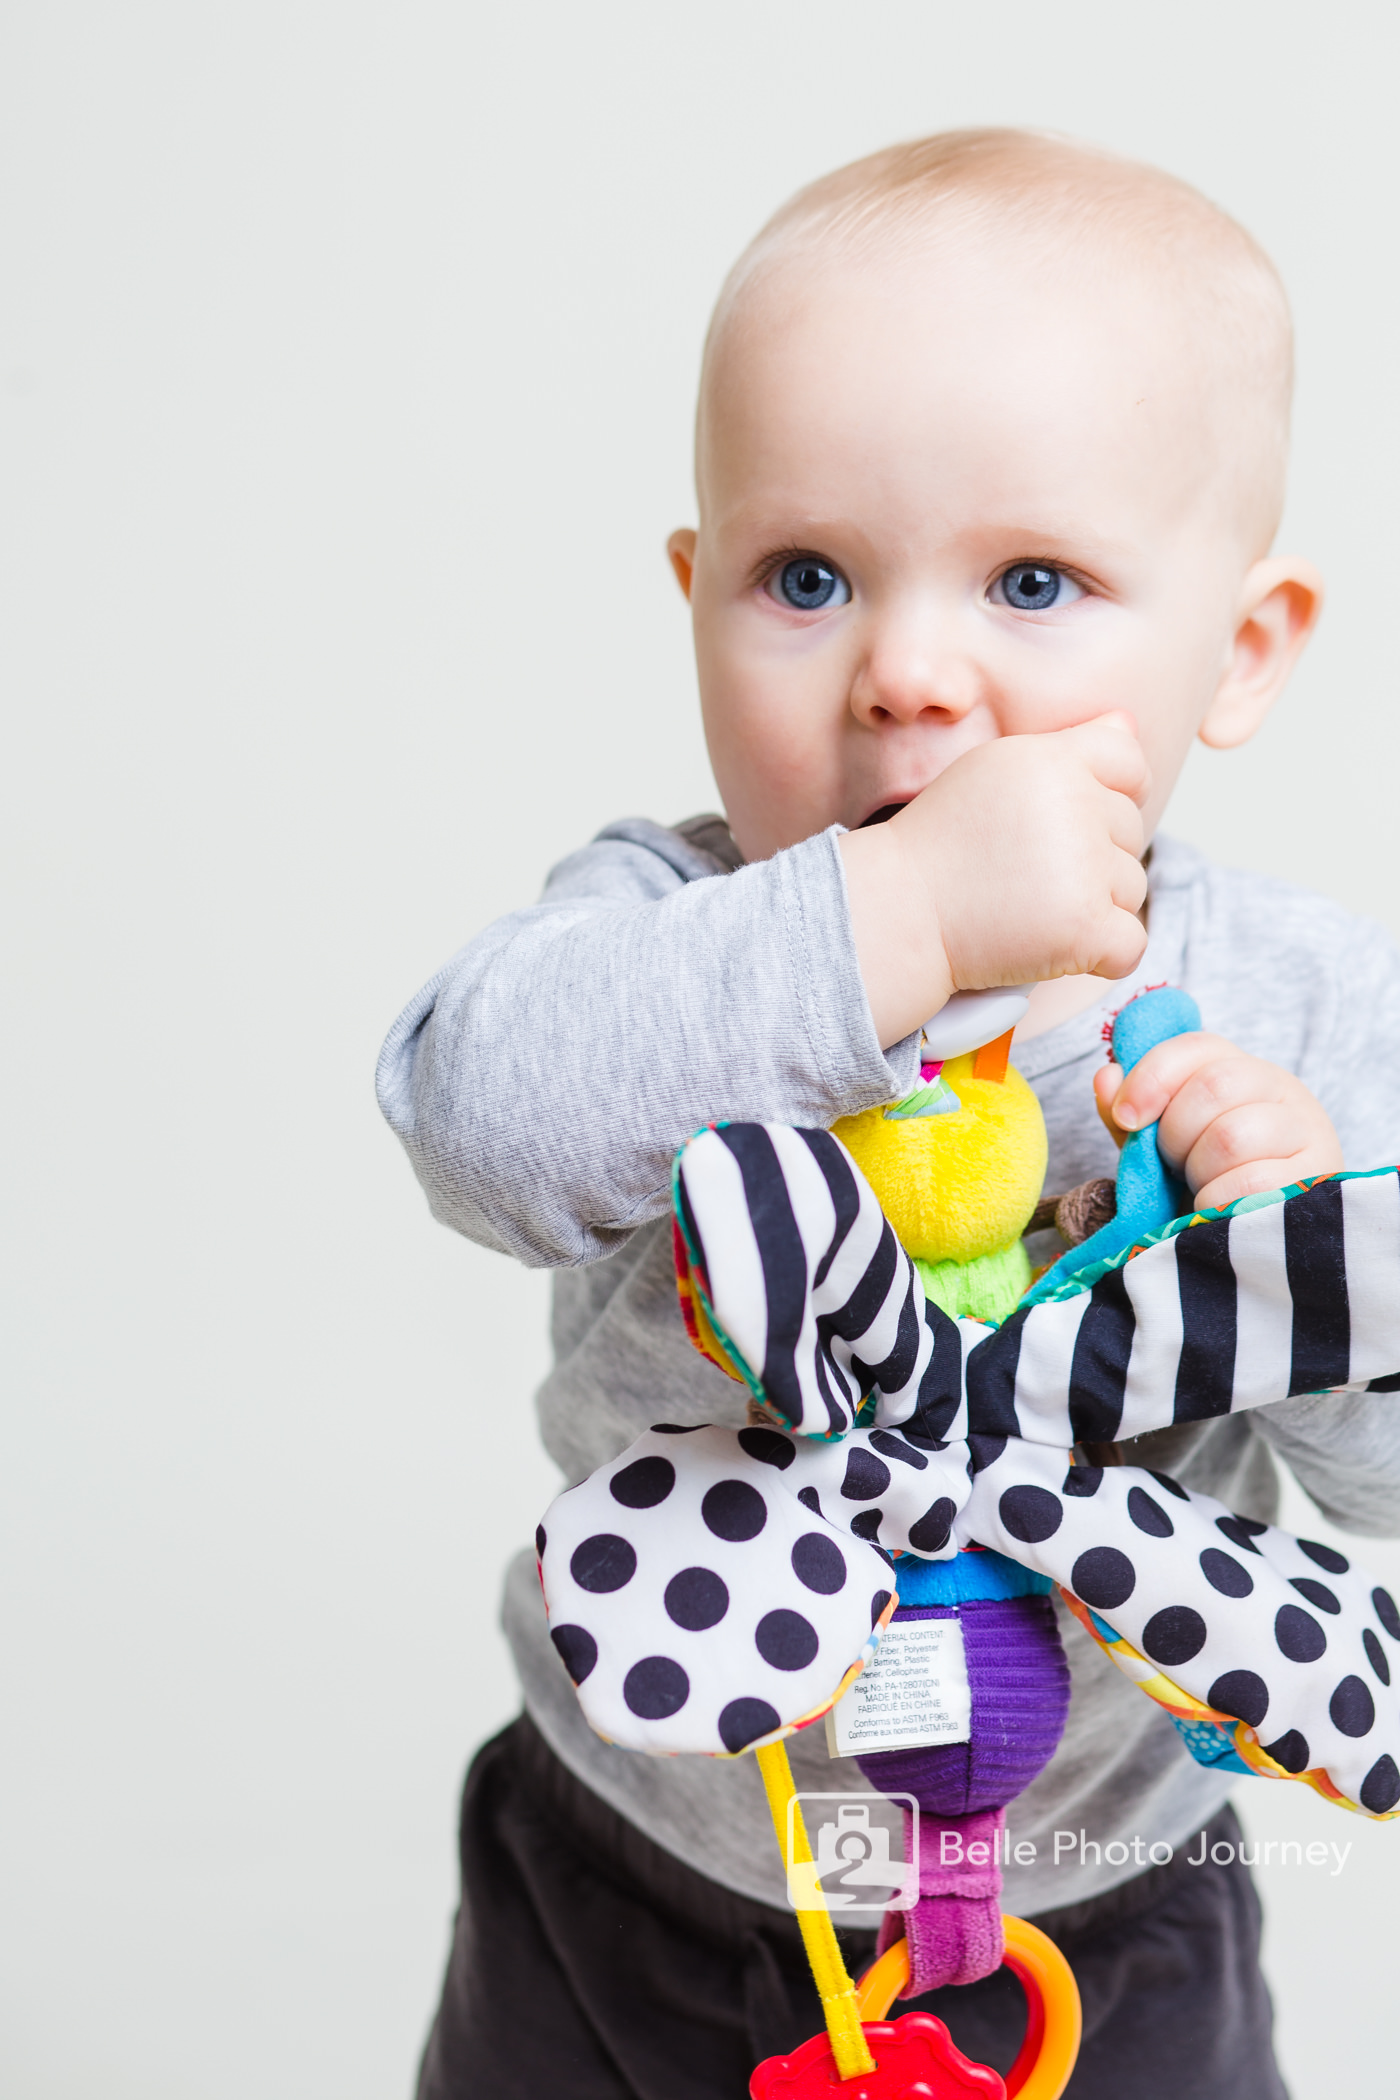 9 10 nine ten months old baby playing with toys